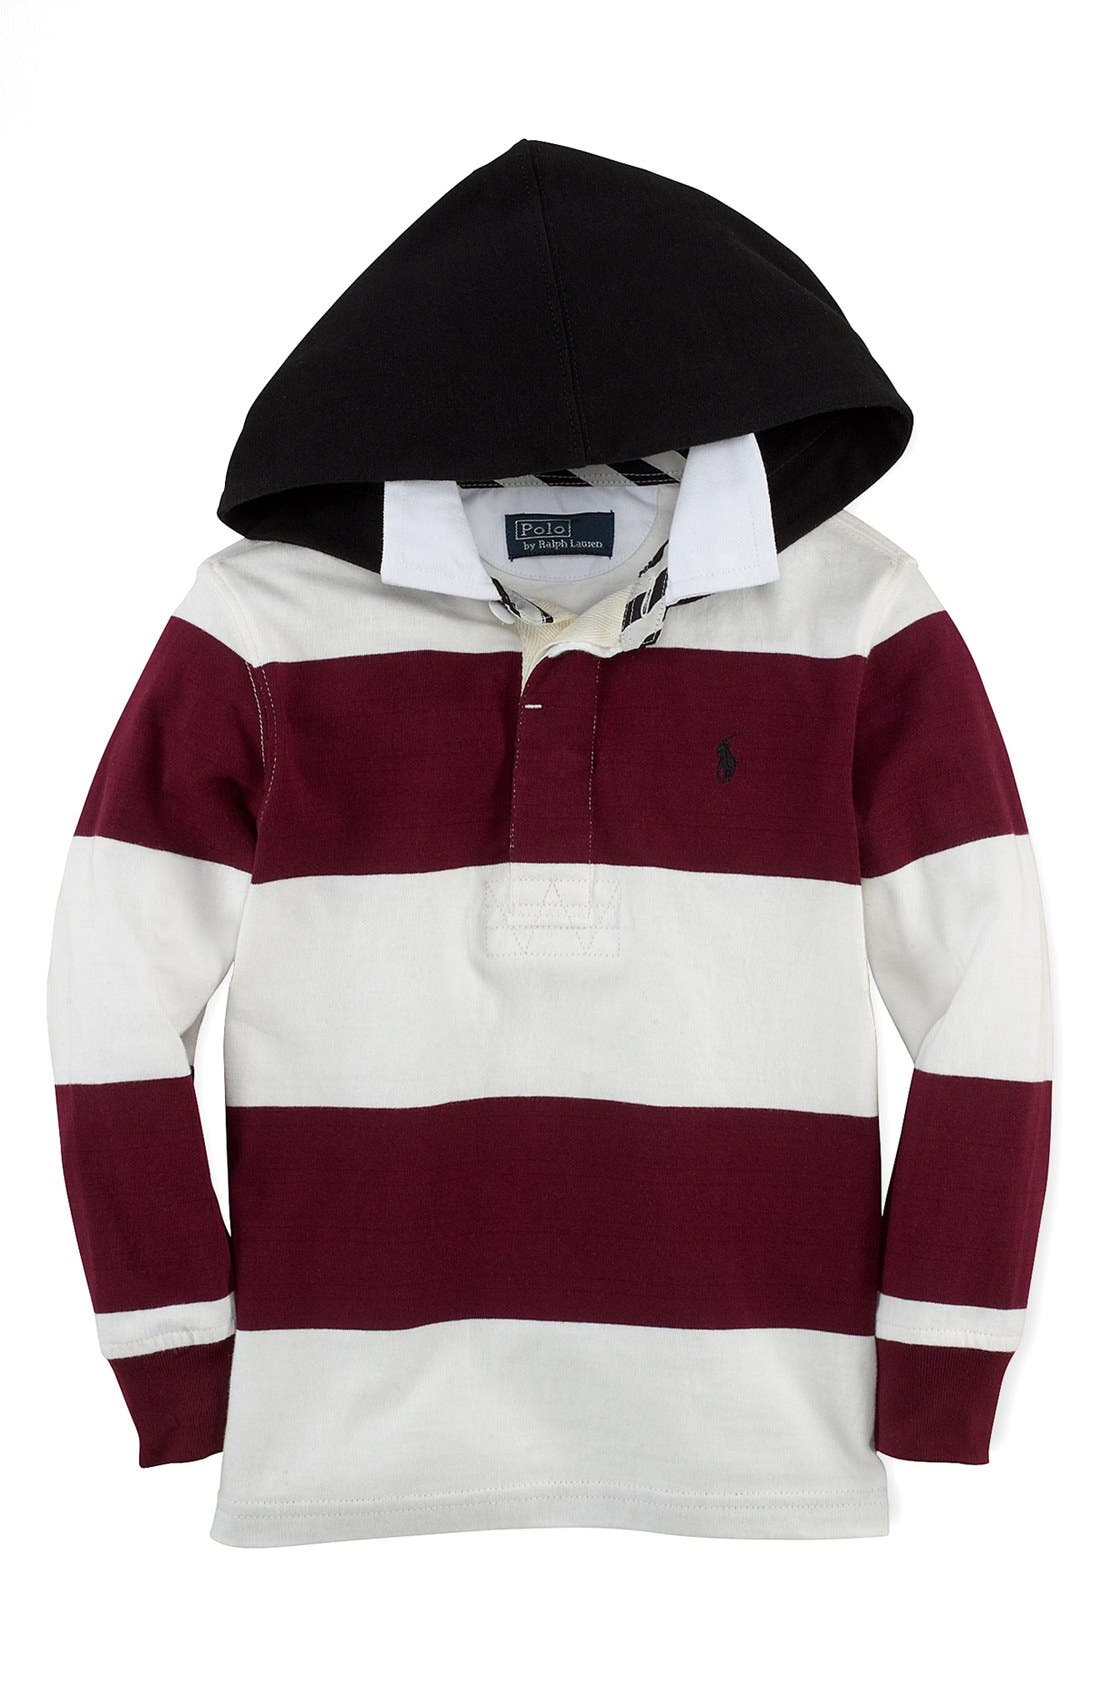 Alternate Image 1 Selected - Ralph Lauren Rugby Stripe Hoodie (Toddler Boys)